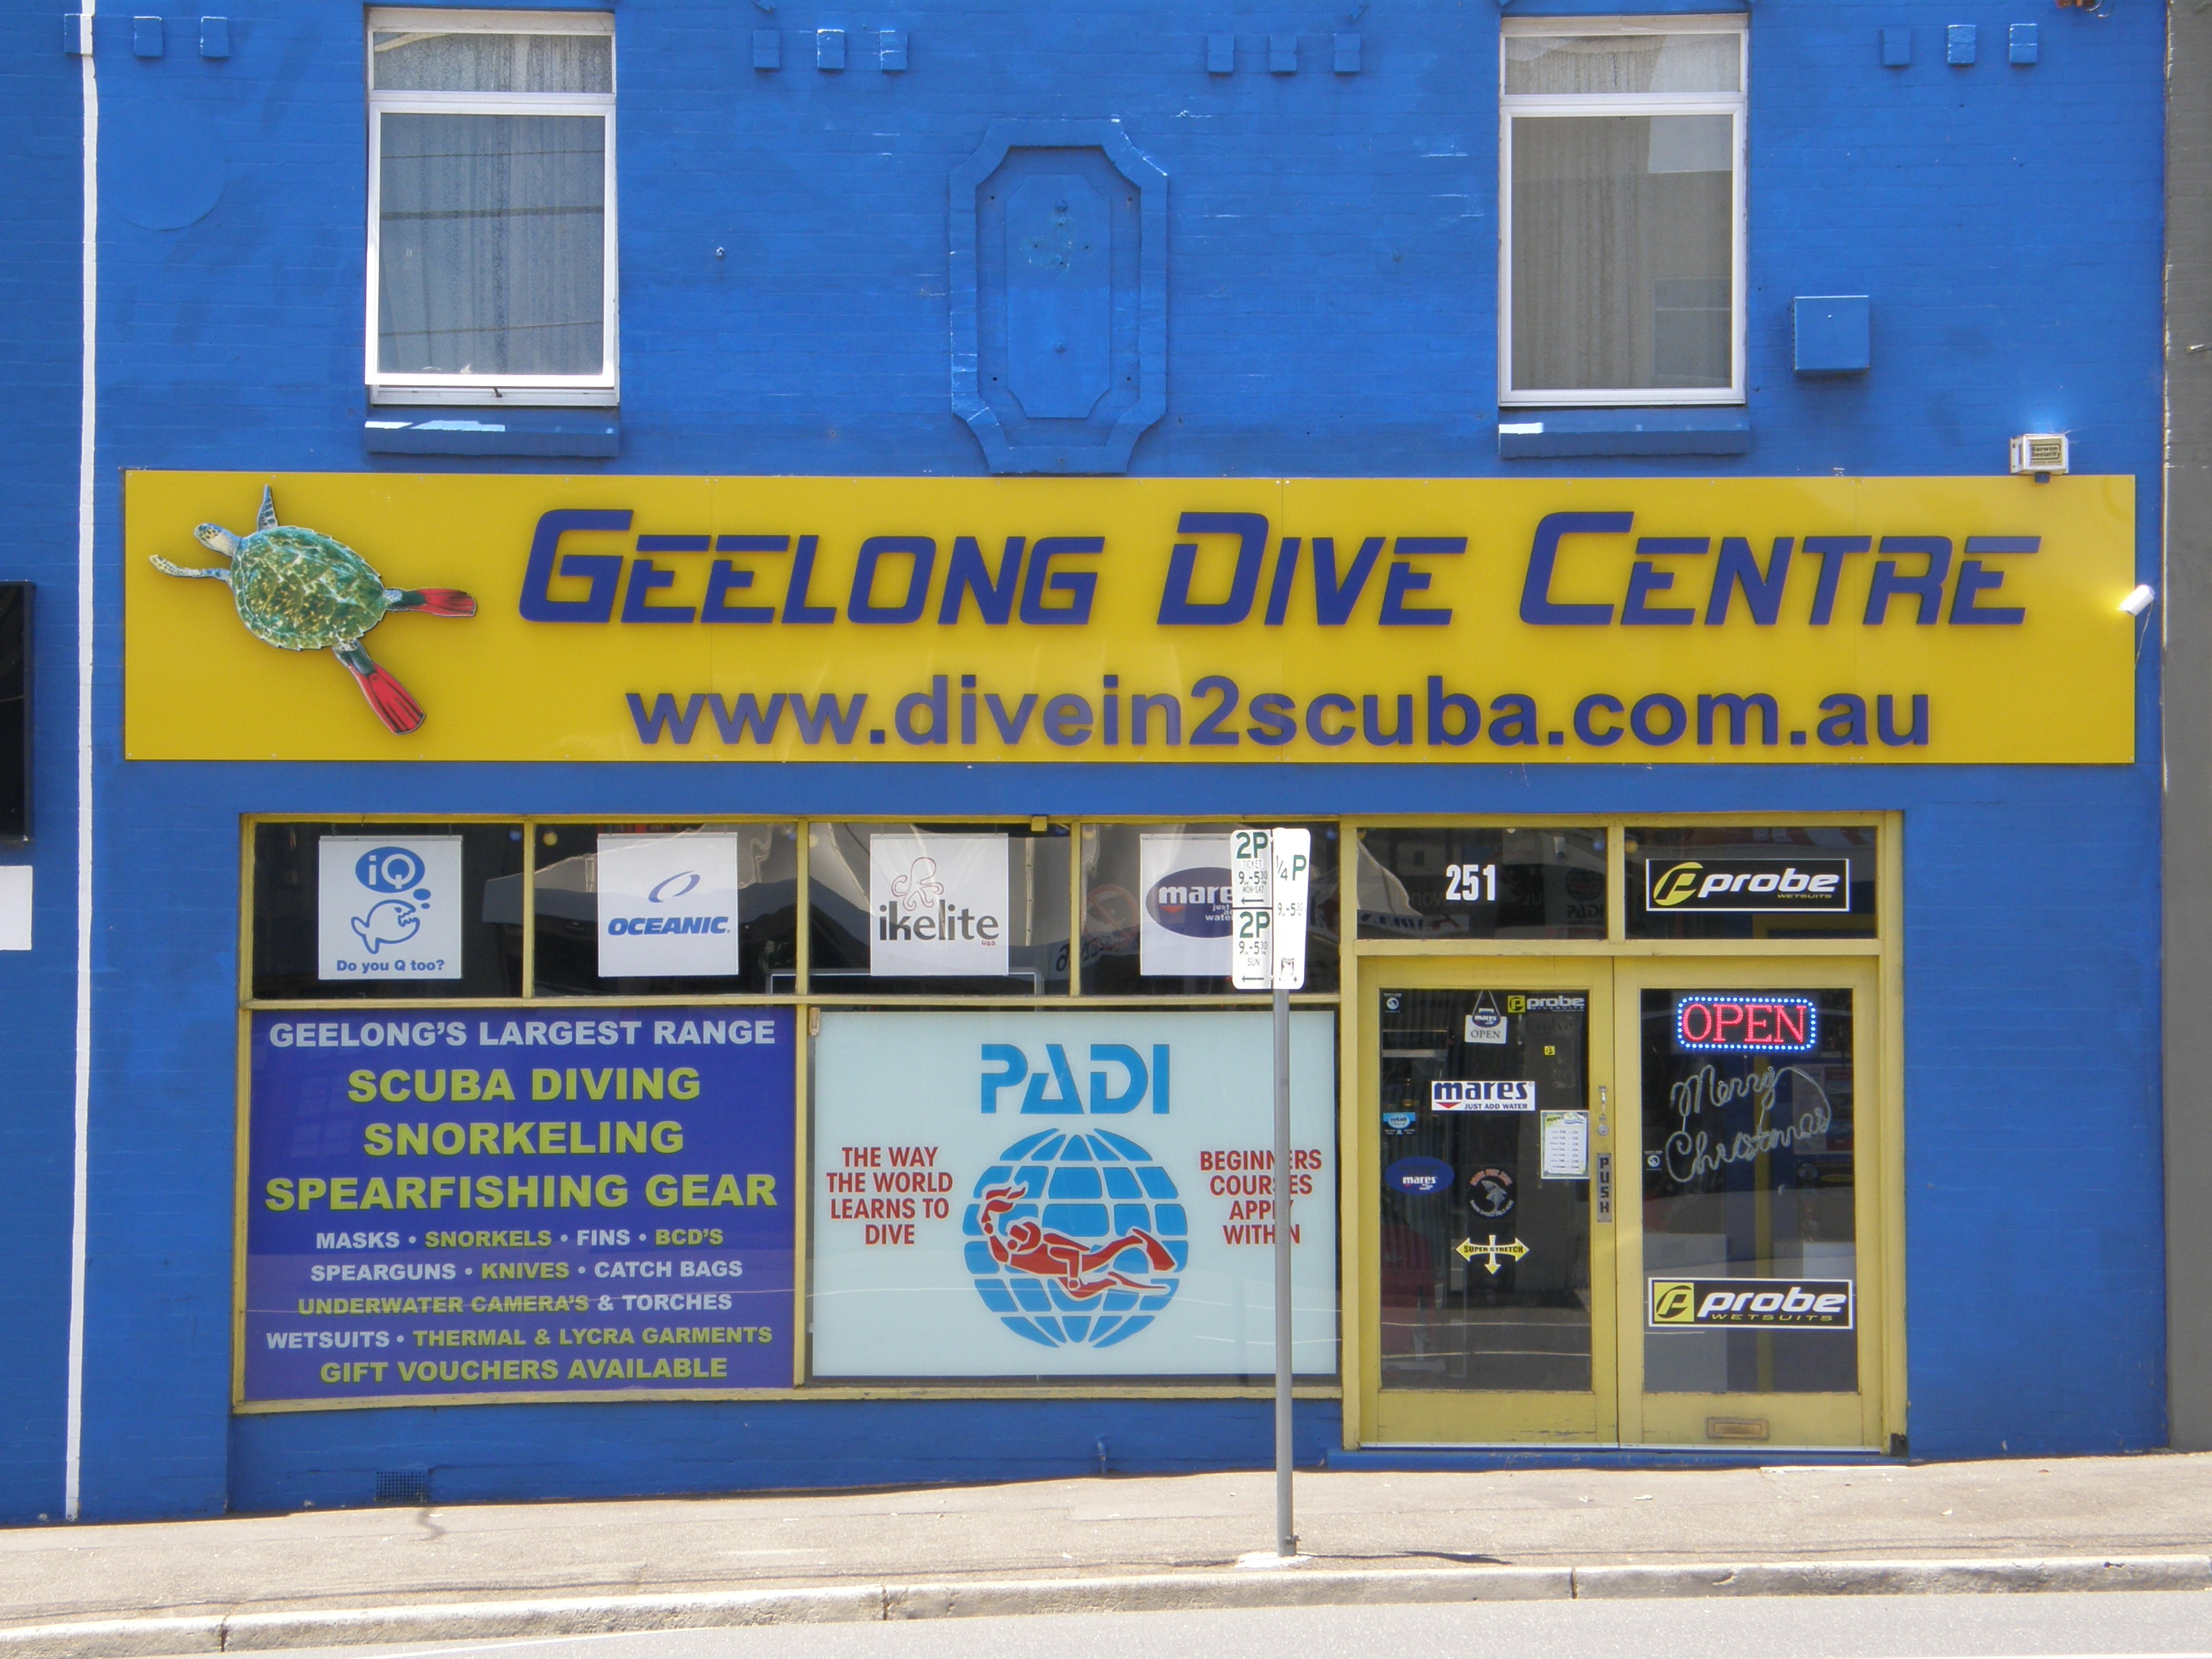 Geelong Dive Centre shop